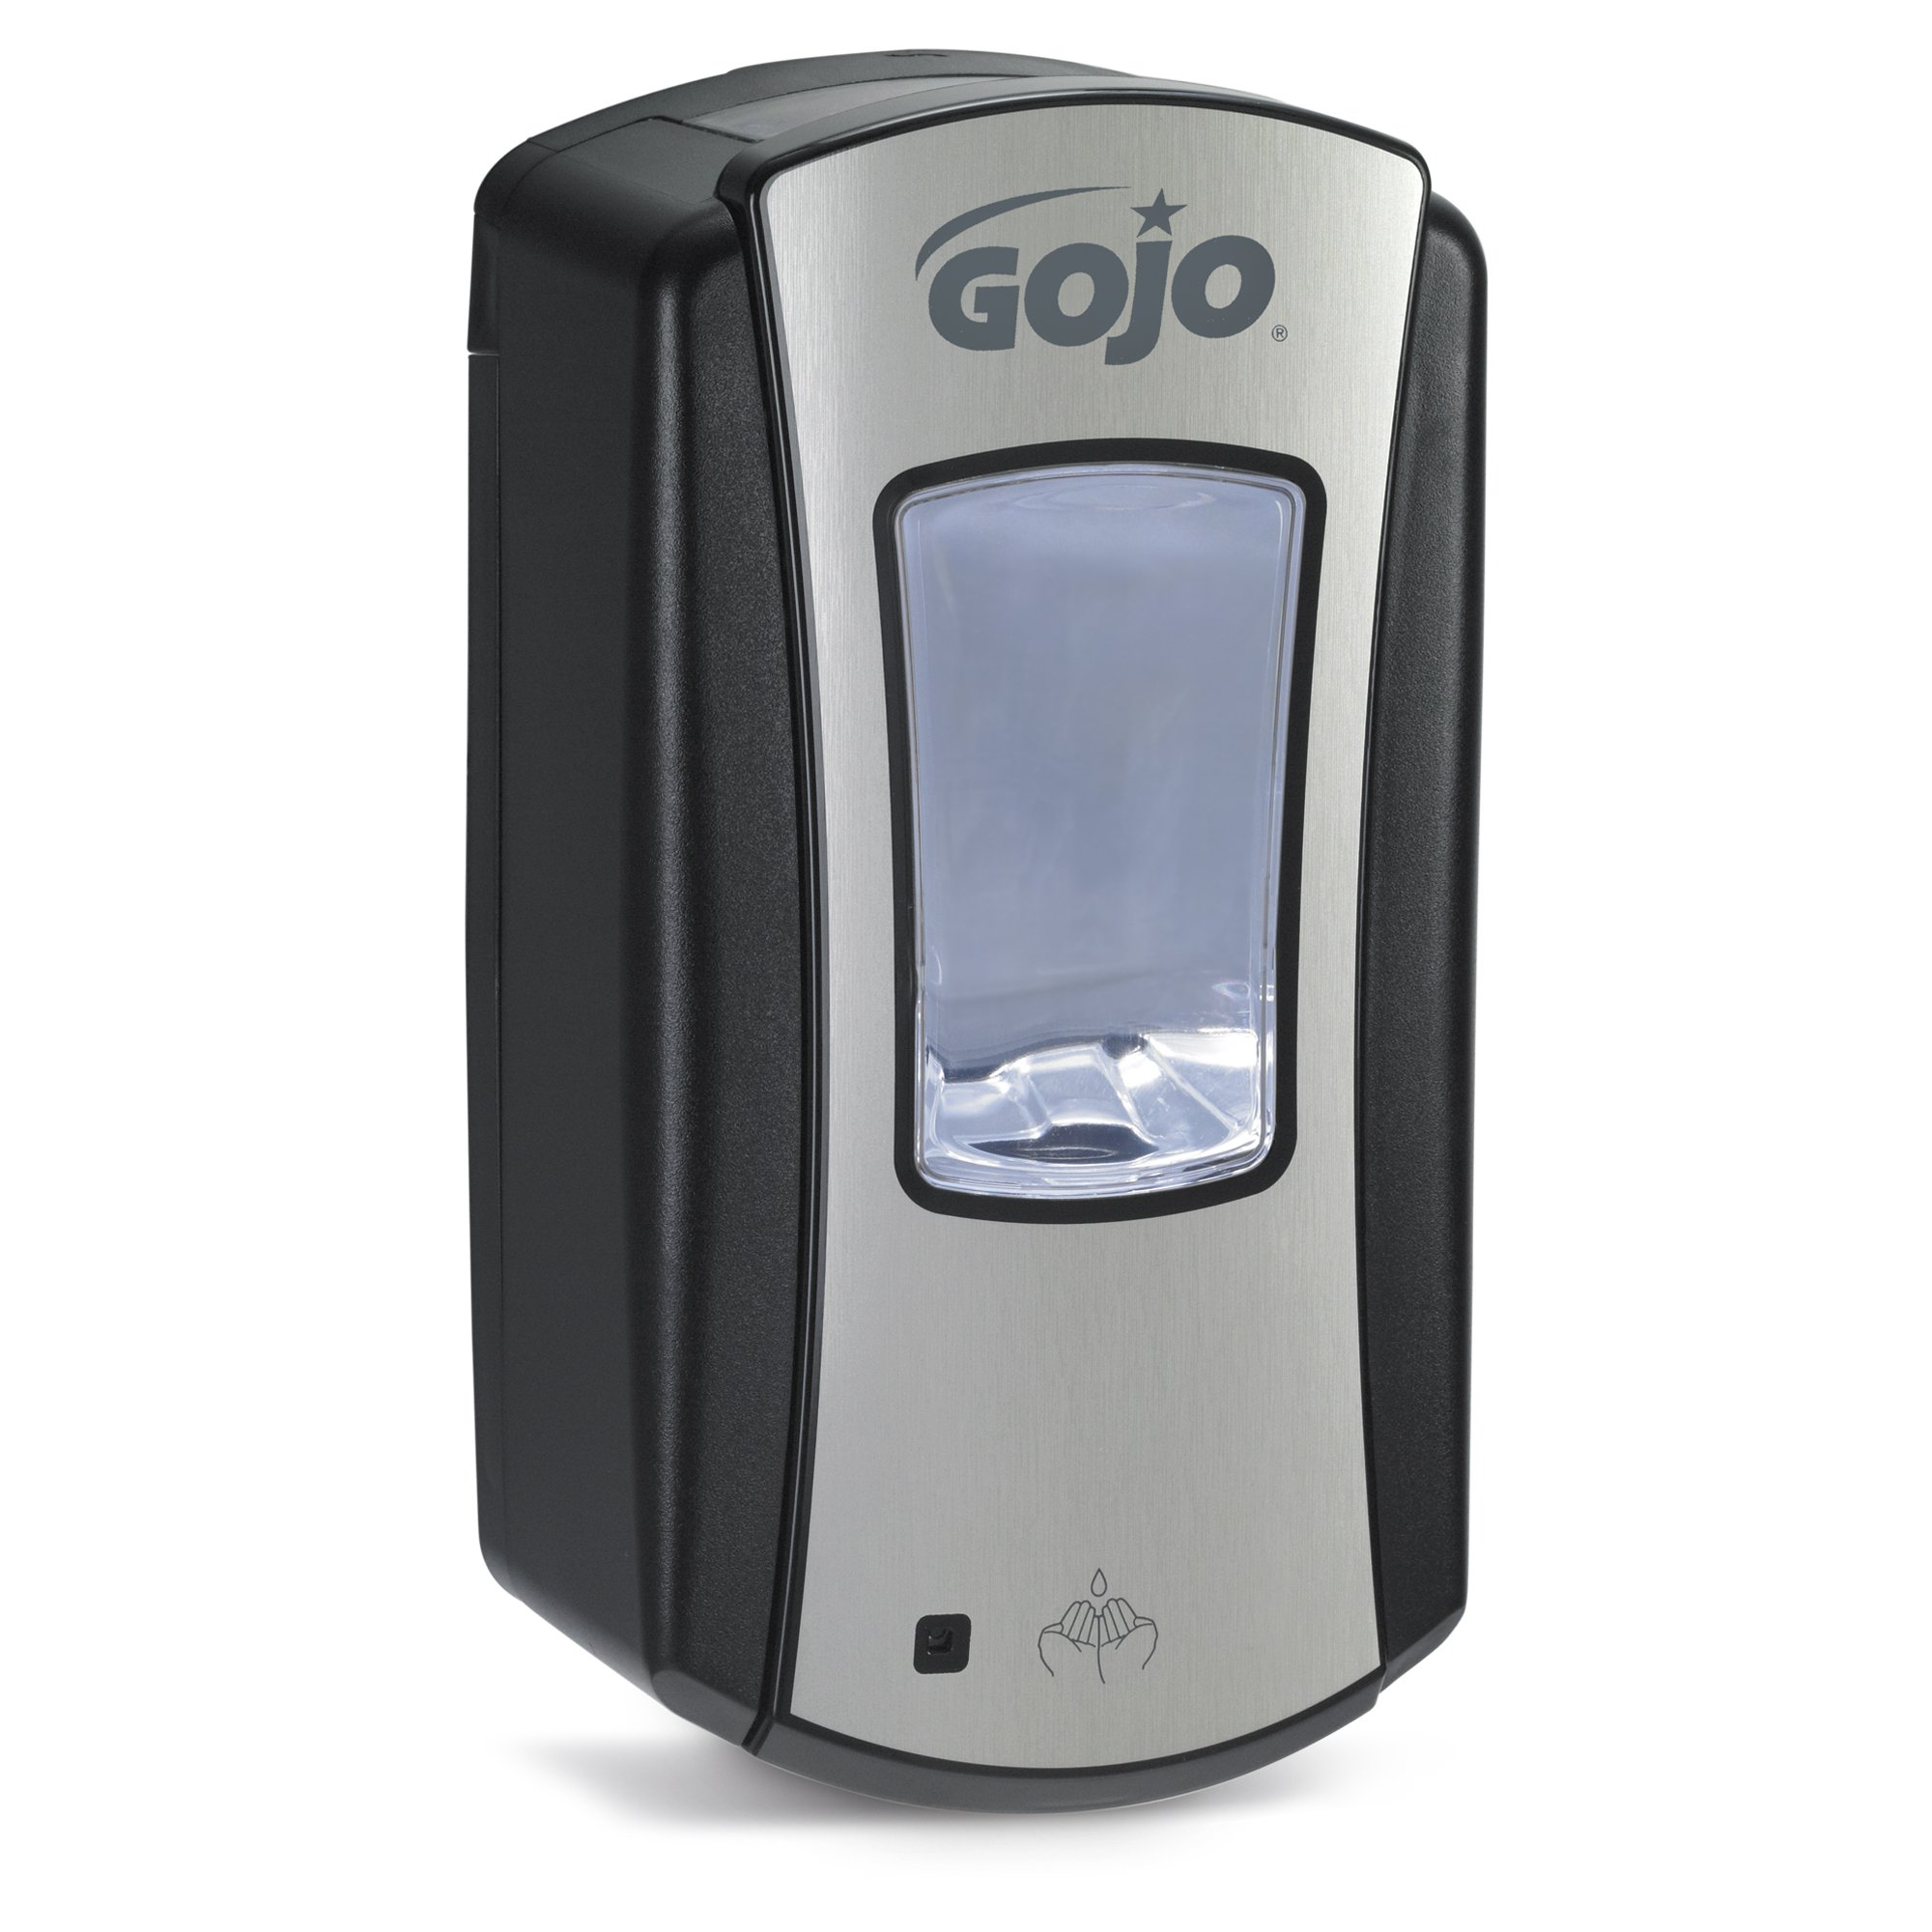 GOJO 1919-01 LTX-12 Dispenser, 1200 mL, Black